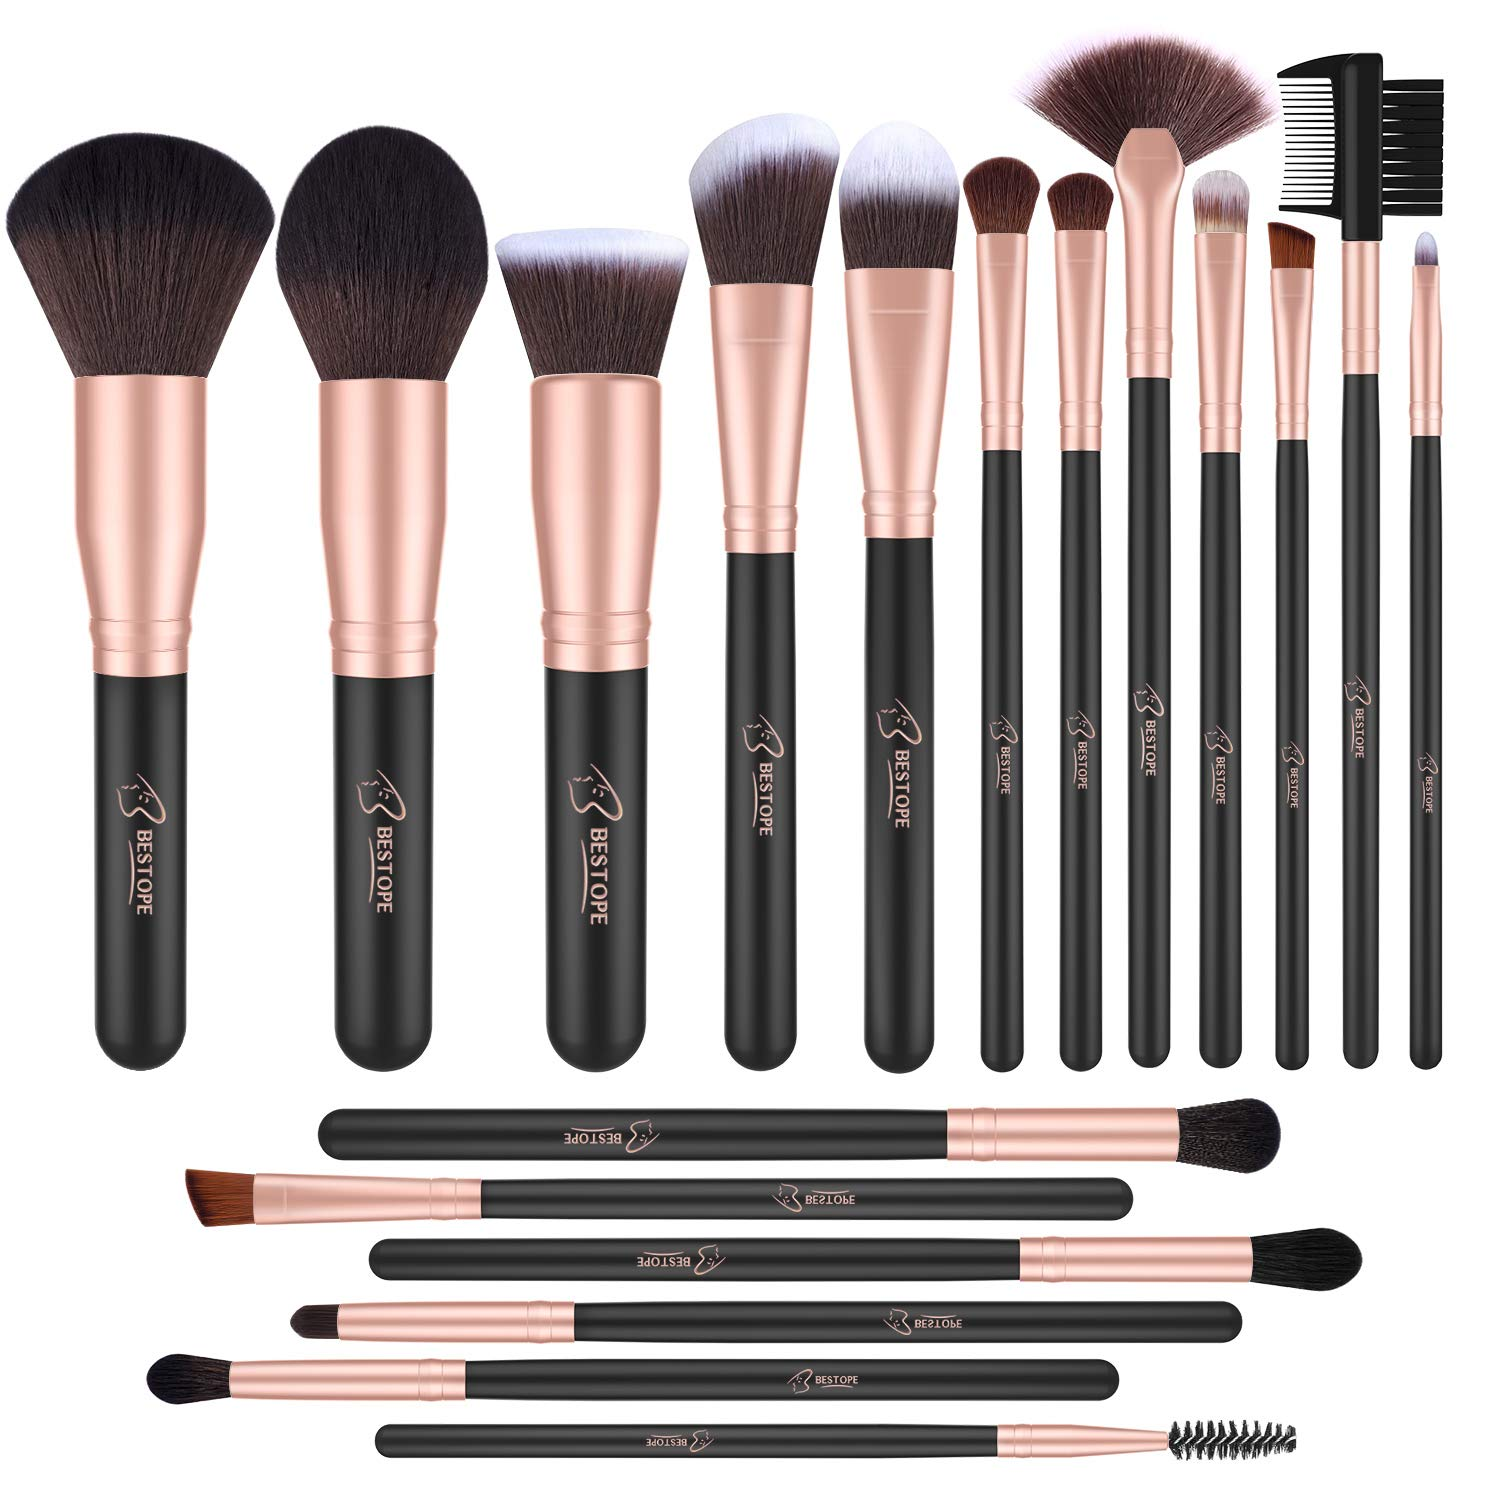 BESTOPE 18 Pcs Makeup Brushes Premium Synthetic Fan Foundation Powder Kabuki Brushes Concealers Eye Shadows Make Up Brushes Kit